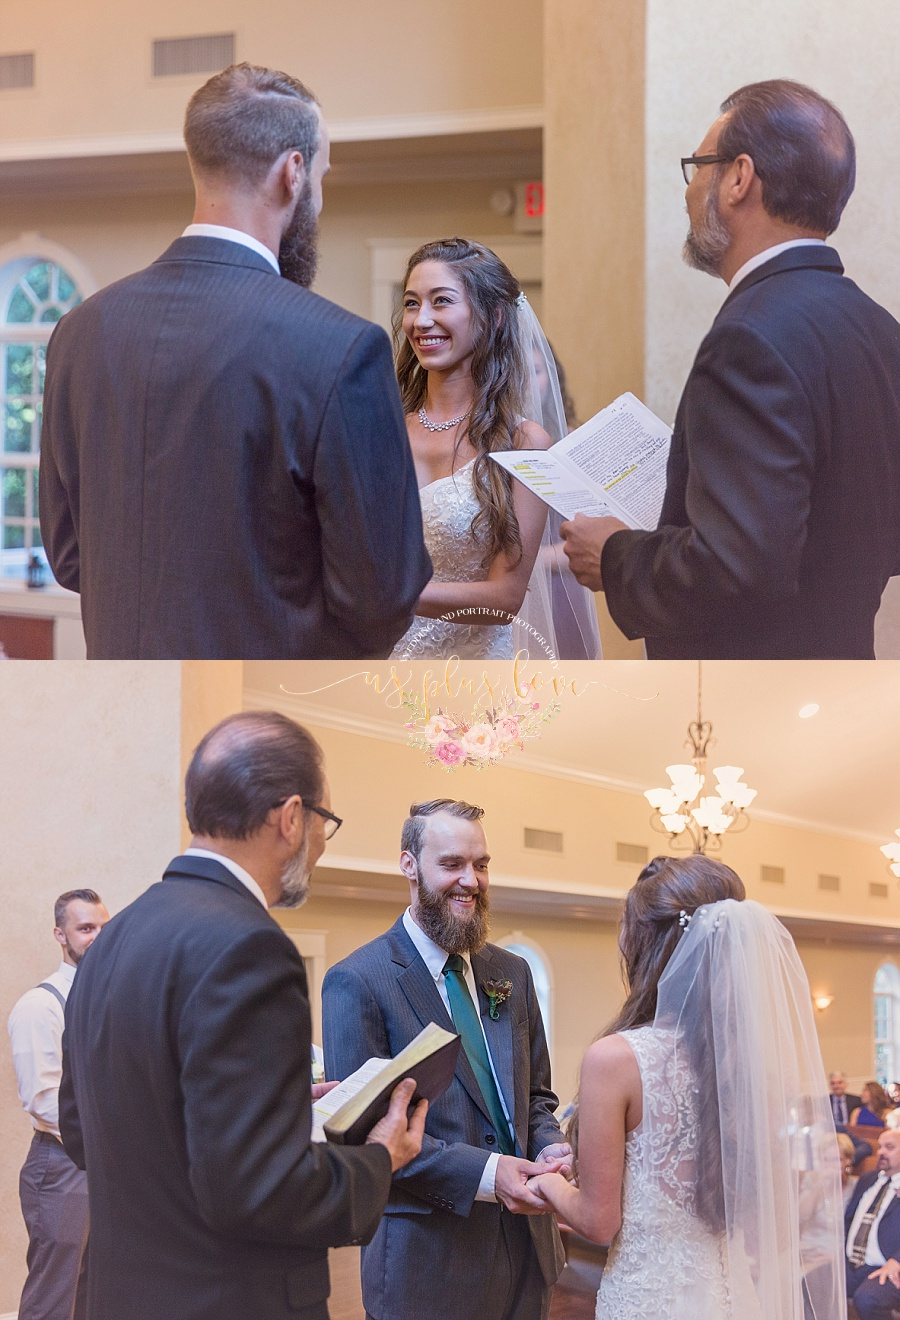 bride-groom-wedding-ceremony-pastor-christian-ashelynn-manor-photographer.jpg